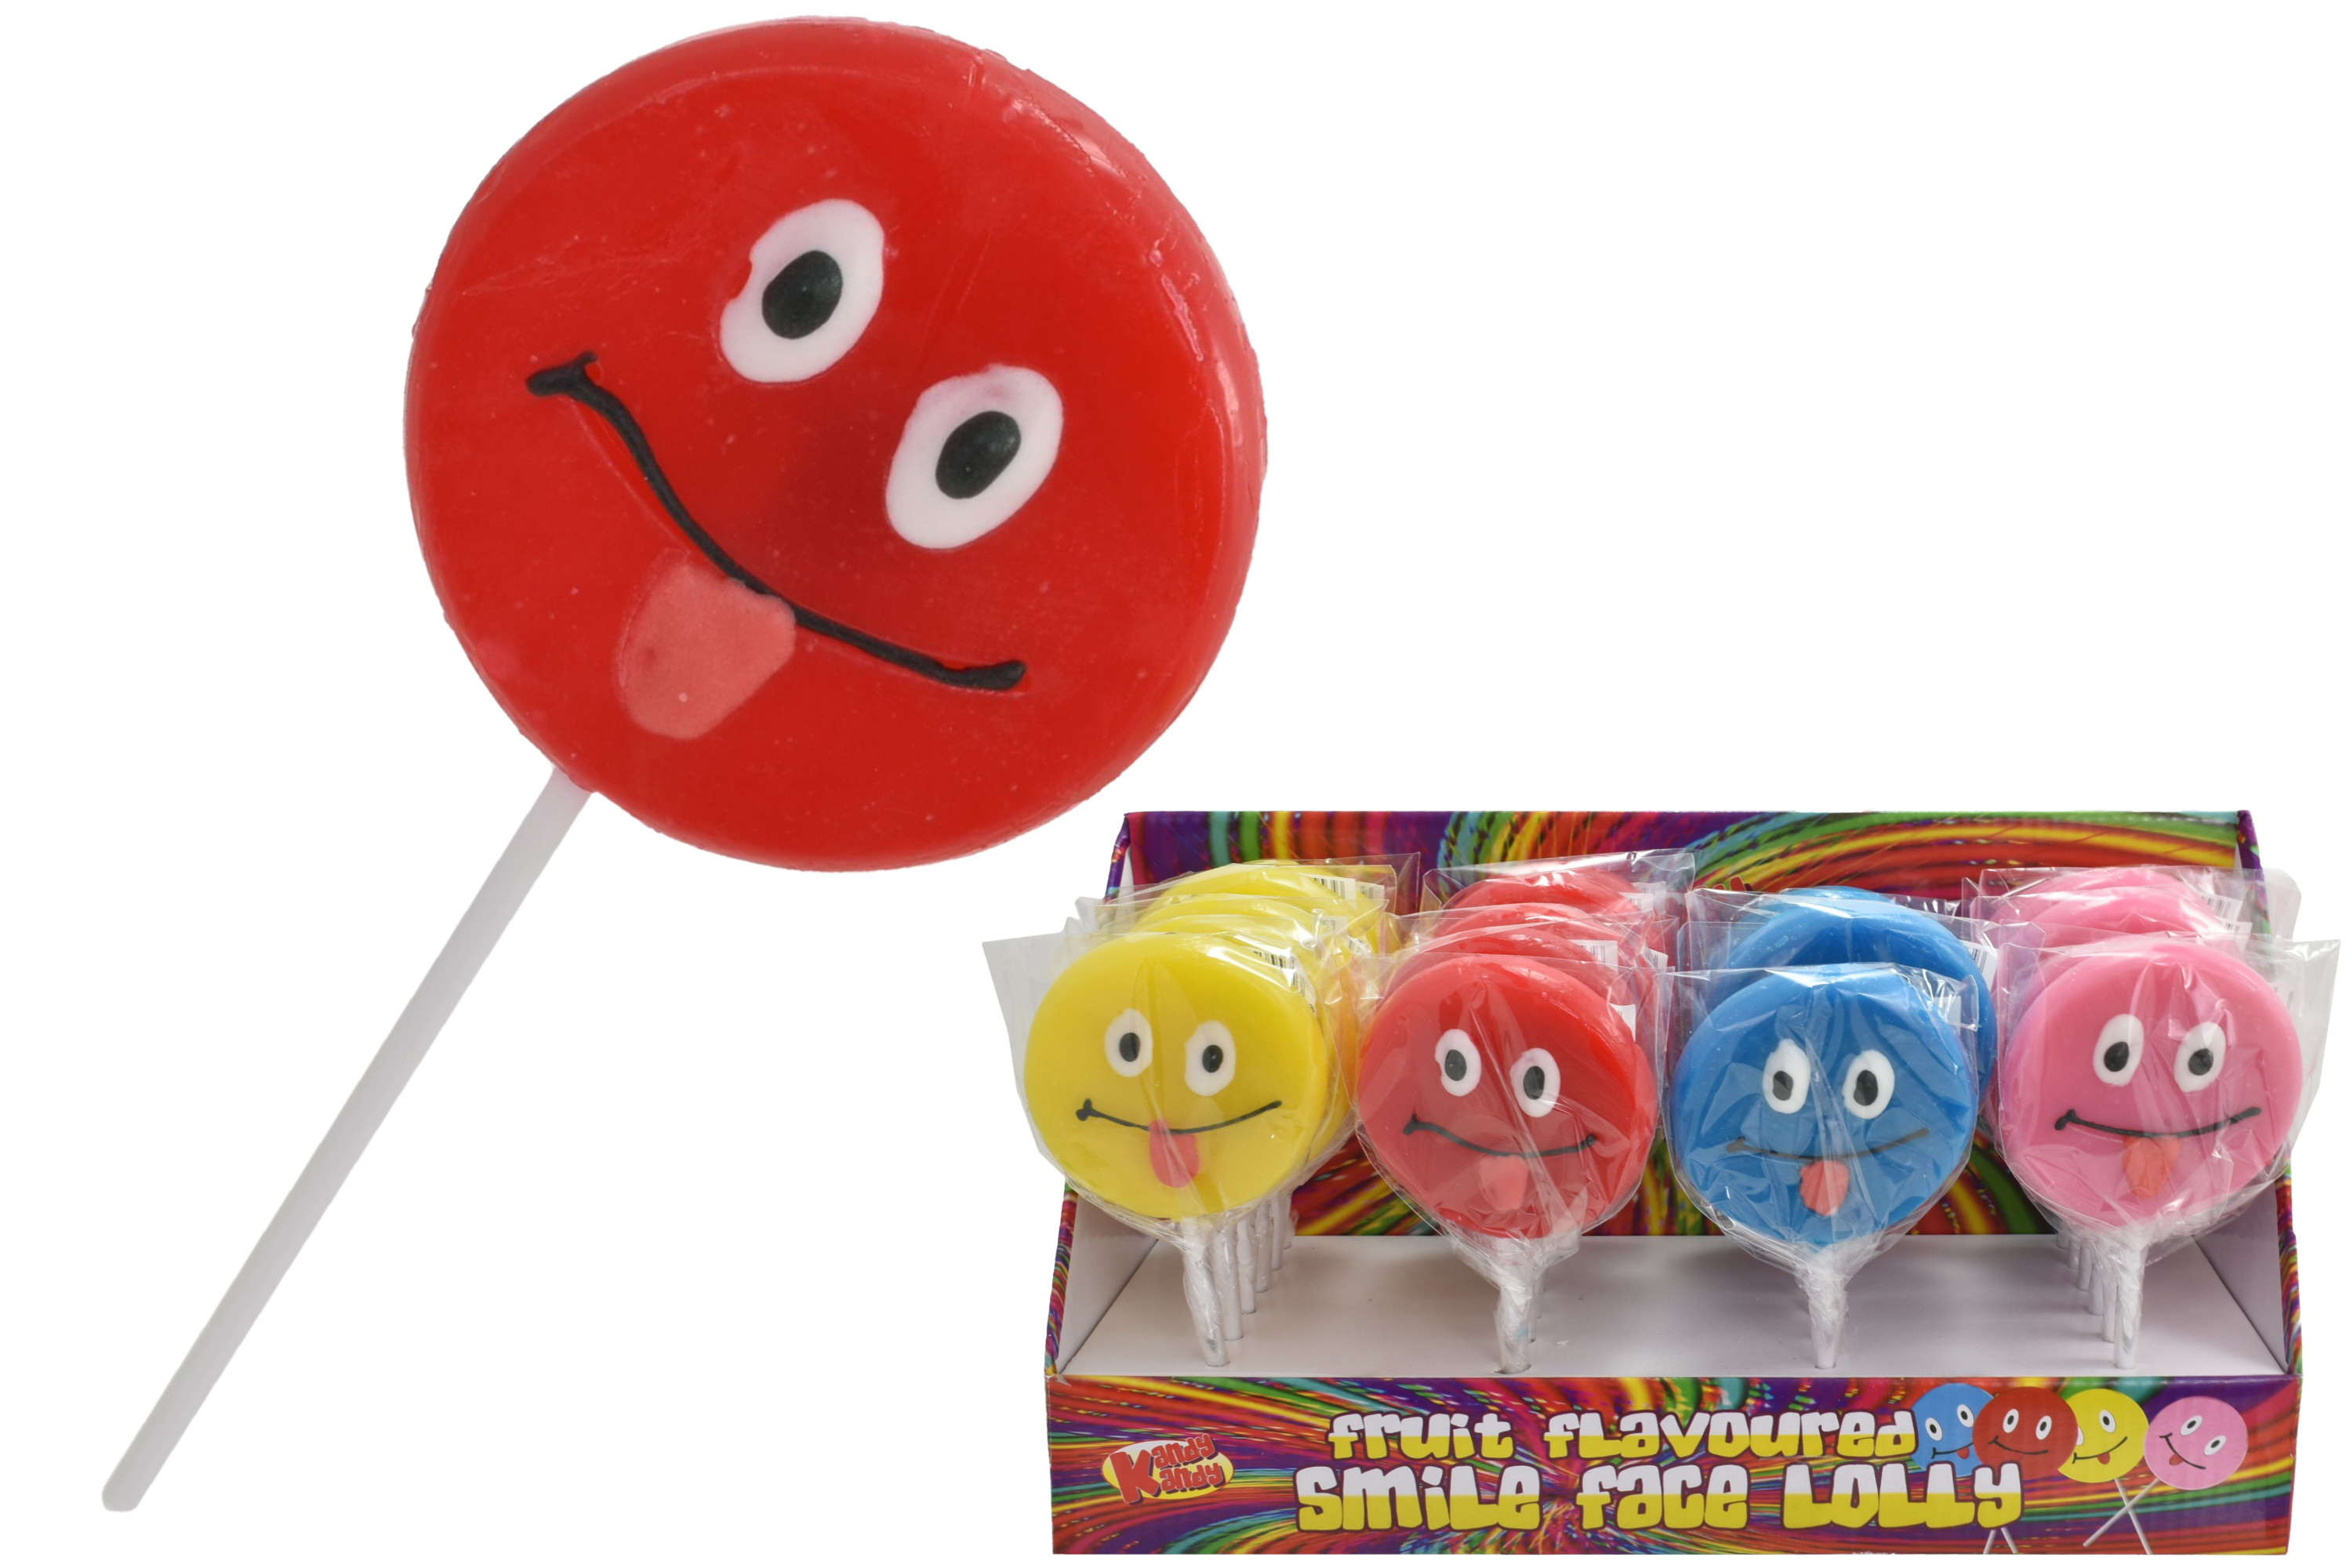 Smiley Face Lolly In Display Box